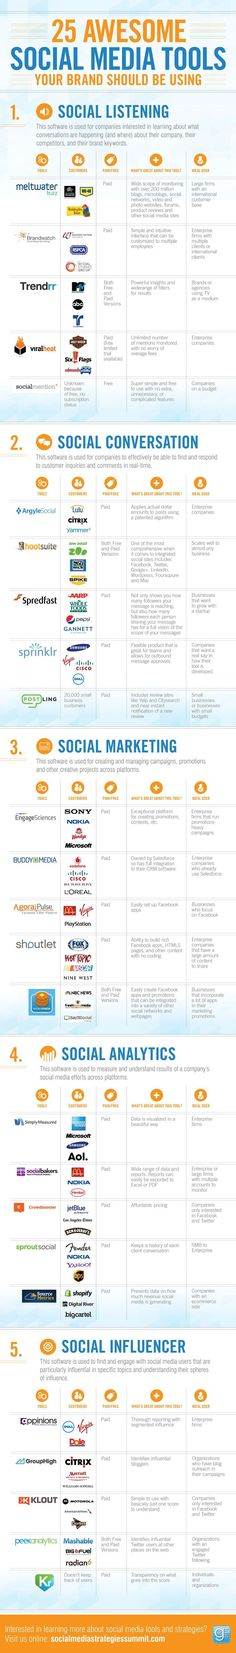 25 Social Media Tools Your Brand Should Be Using - #infographic